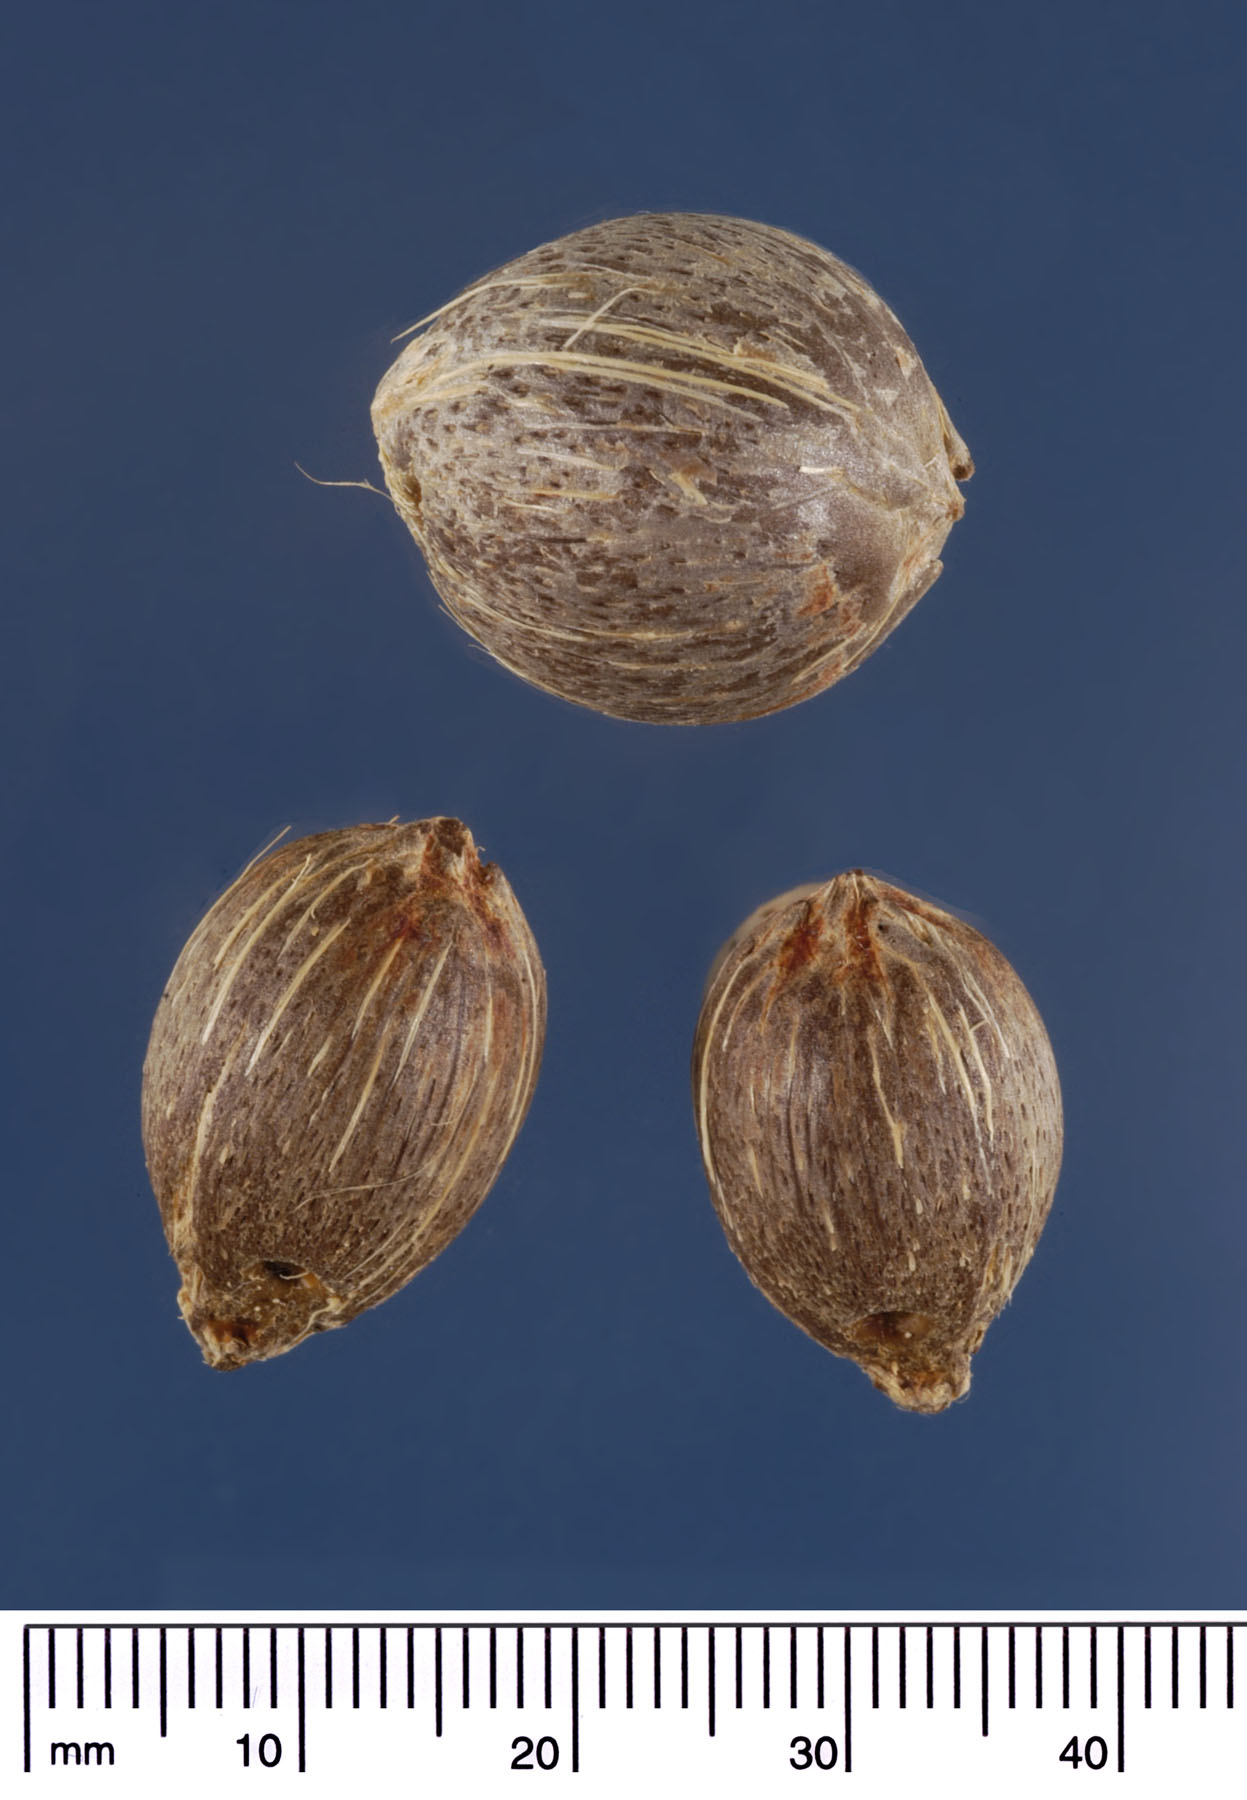 <p><em>Syagrus romanzoffiana</em> seeds. Photograph courtesy of Mariana P. Beckman, DPI</p>